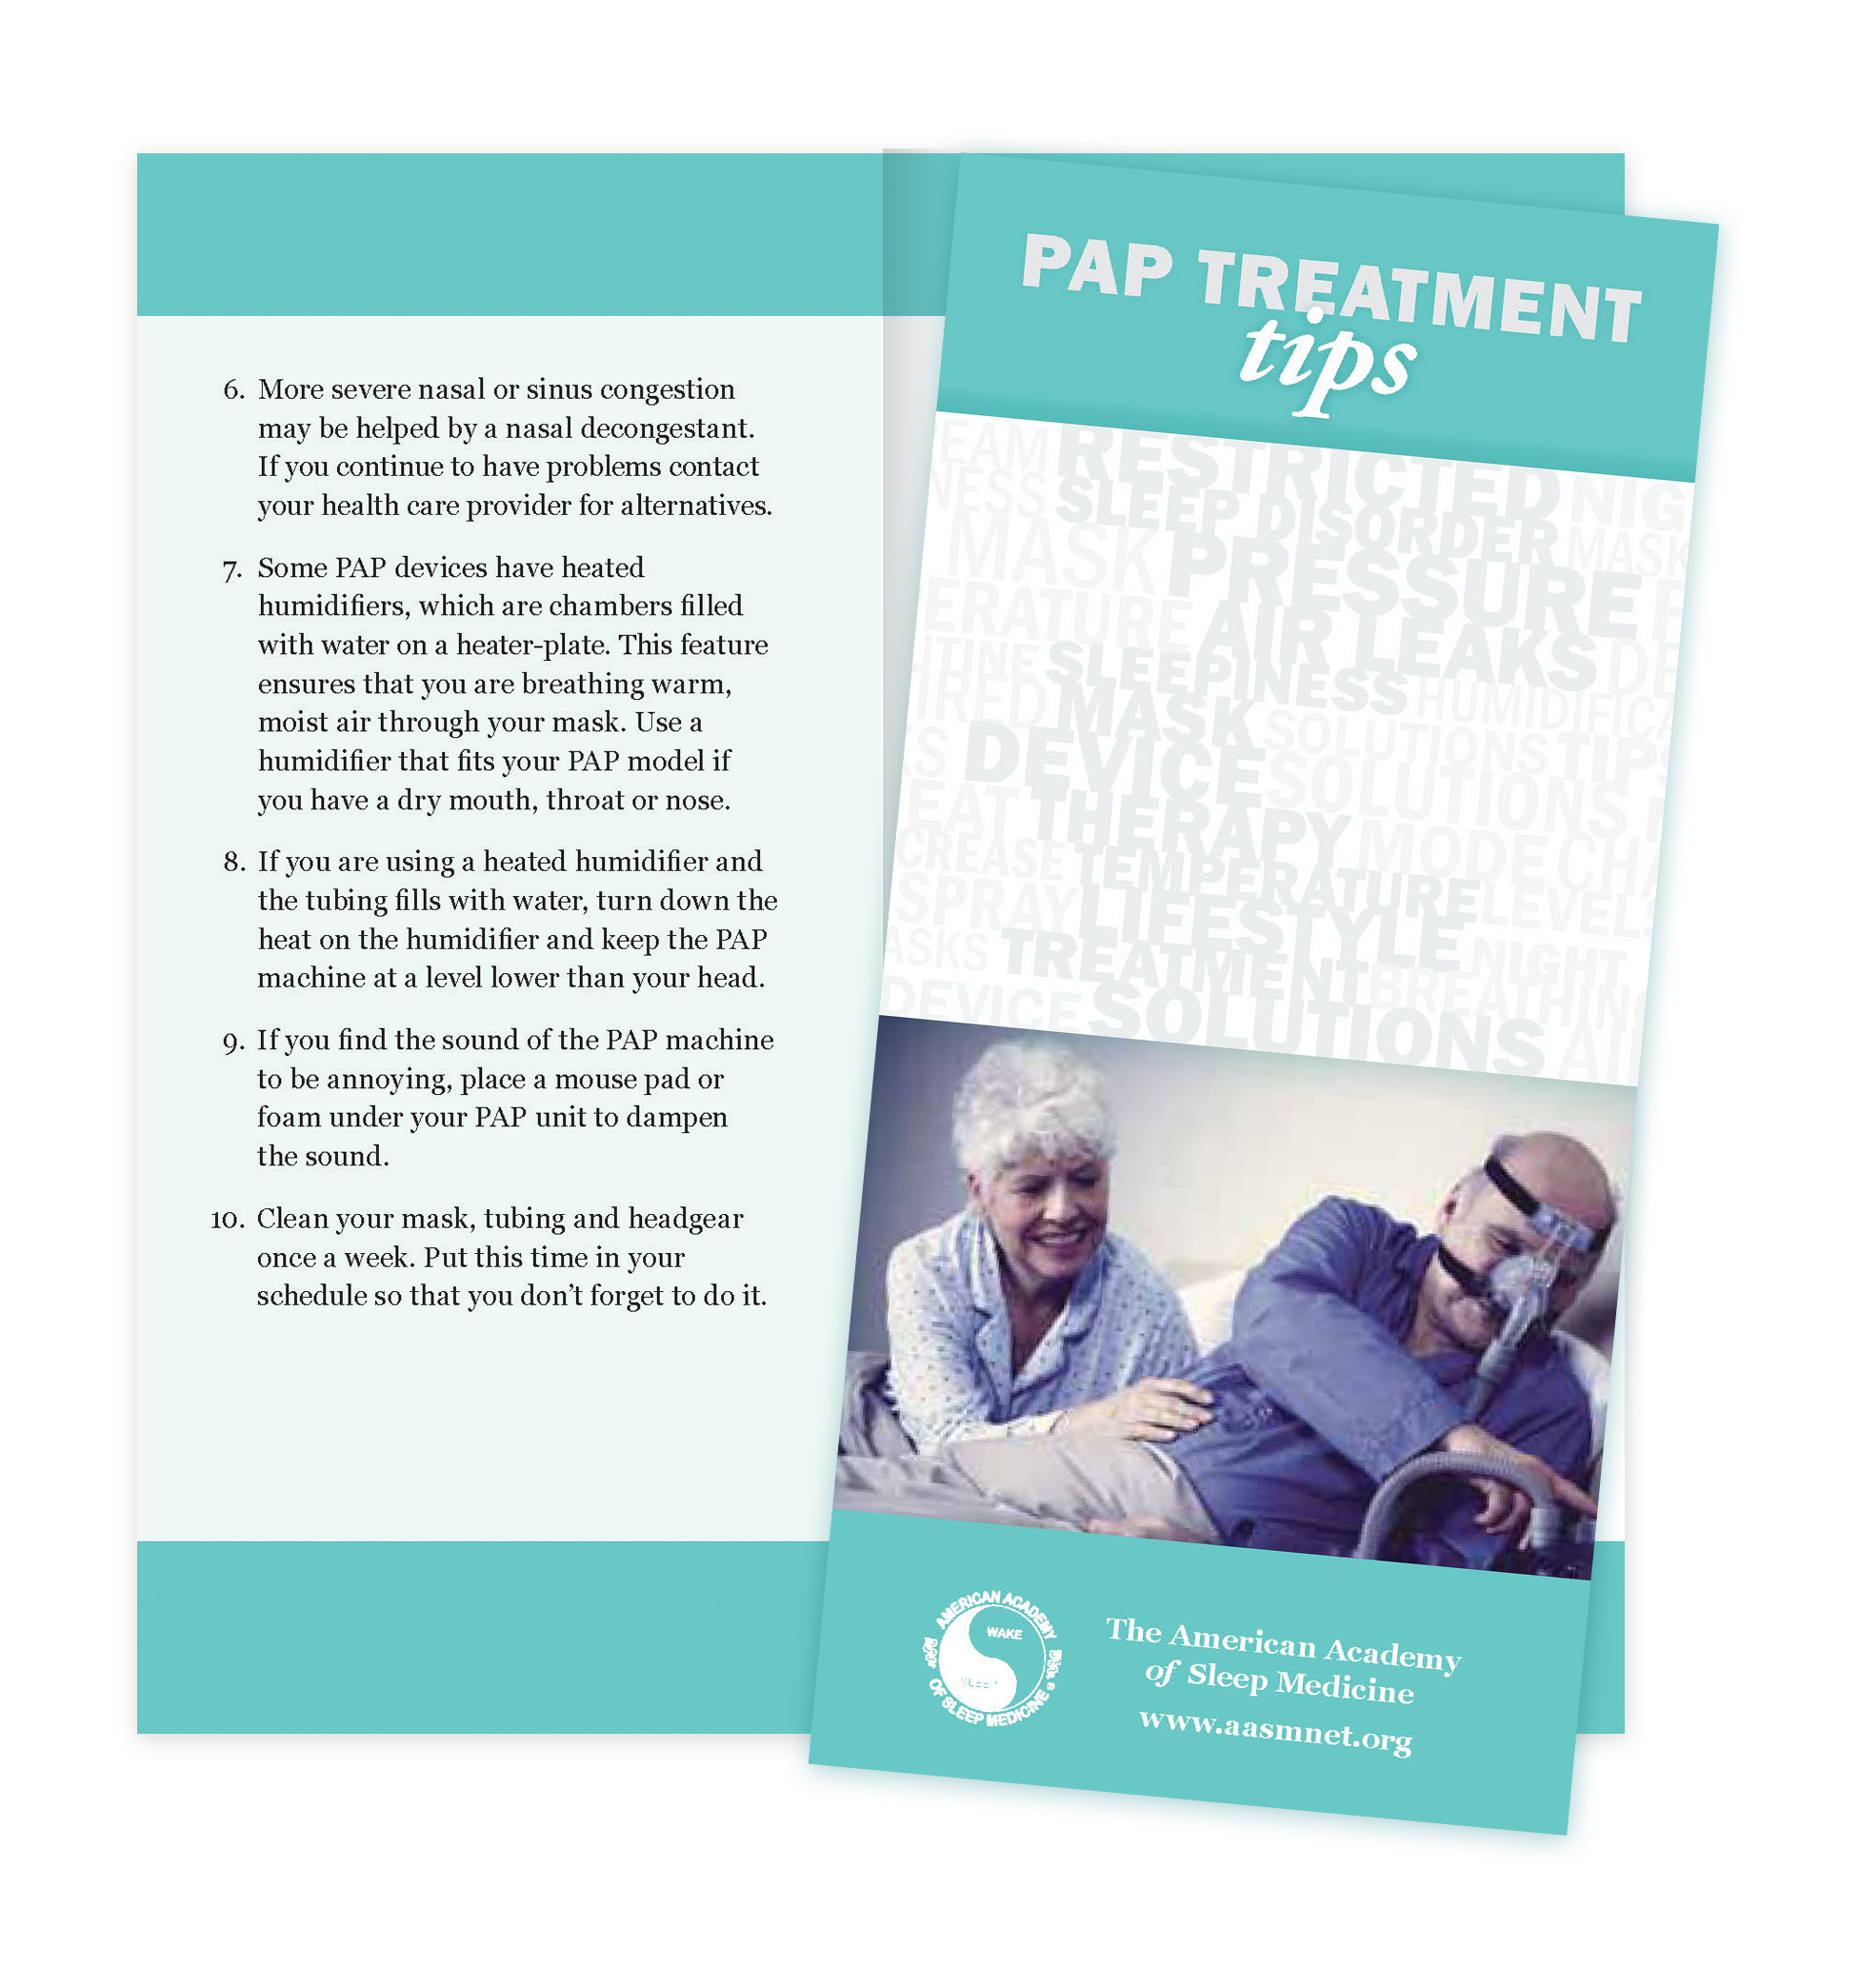 PAP Treatment Tips Patient Education Brochures (50 brochures)